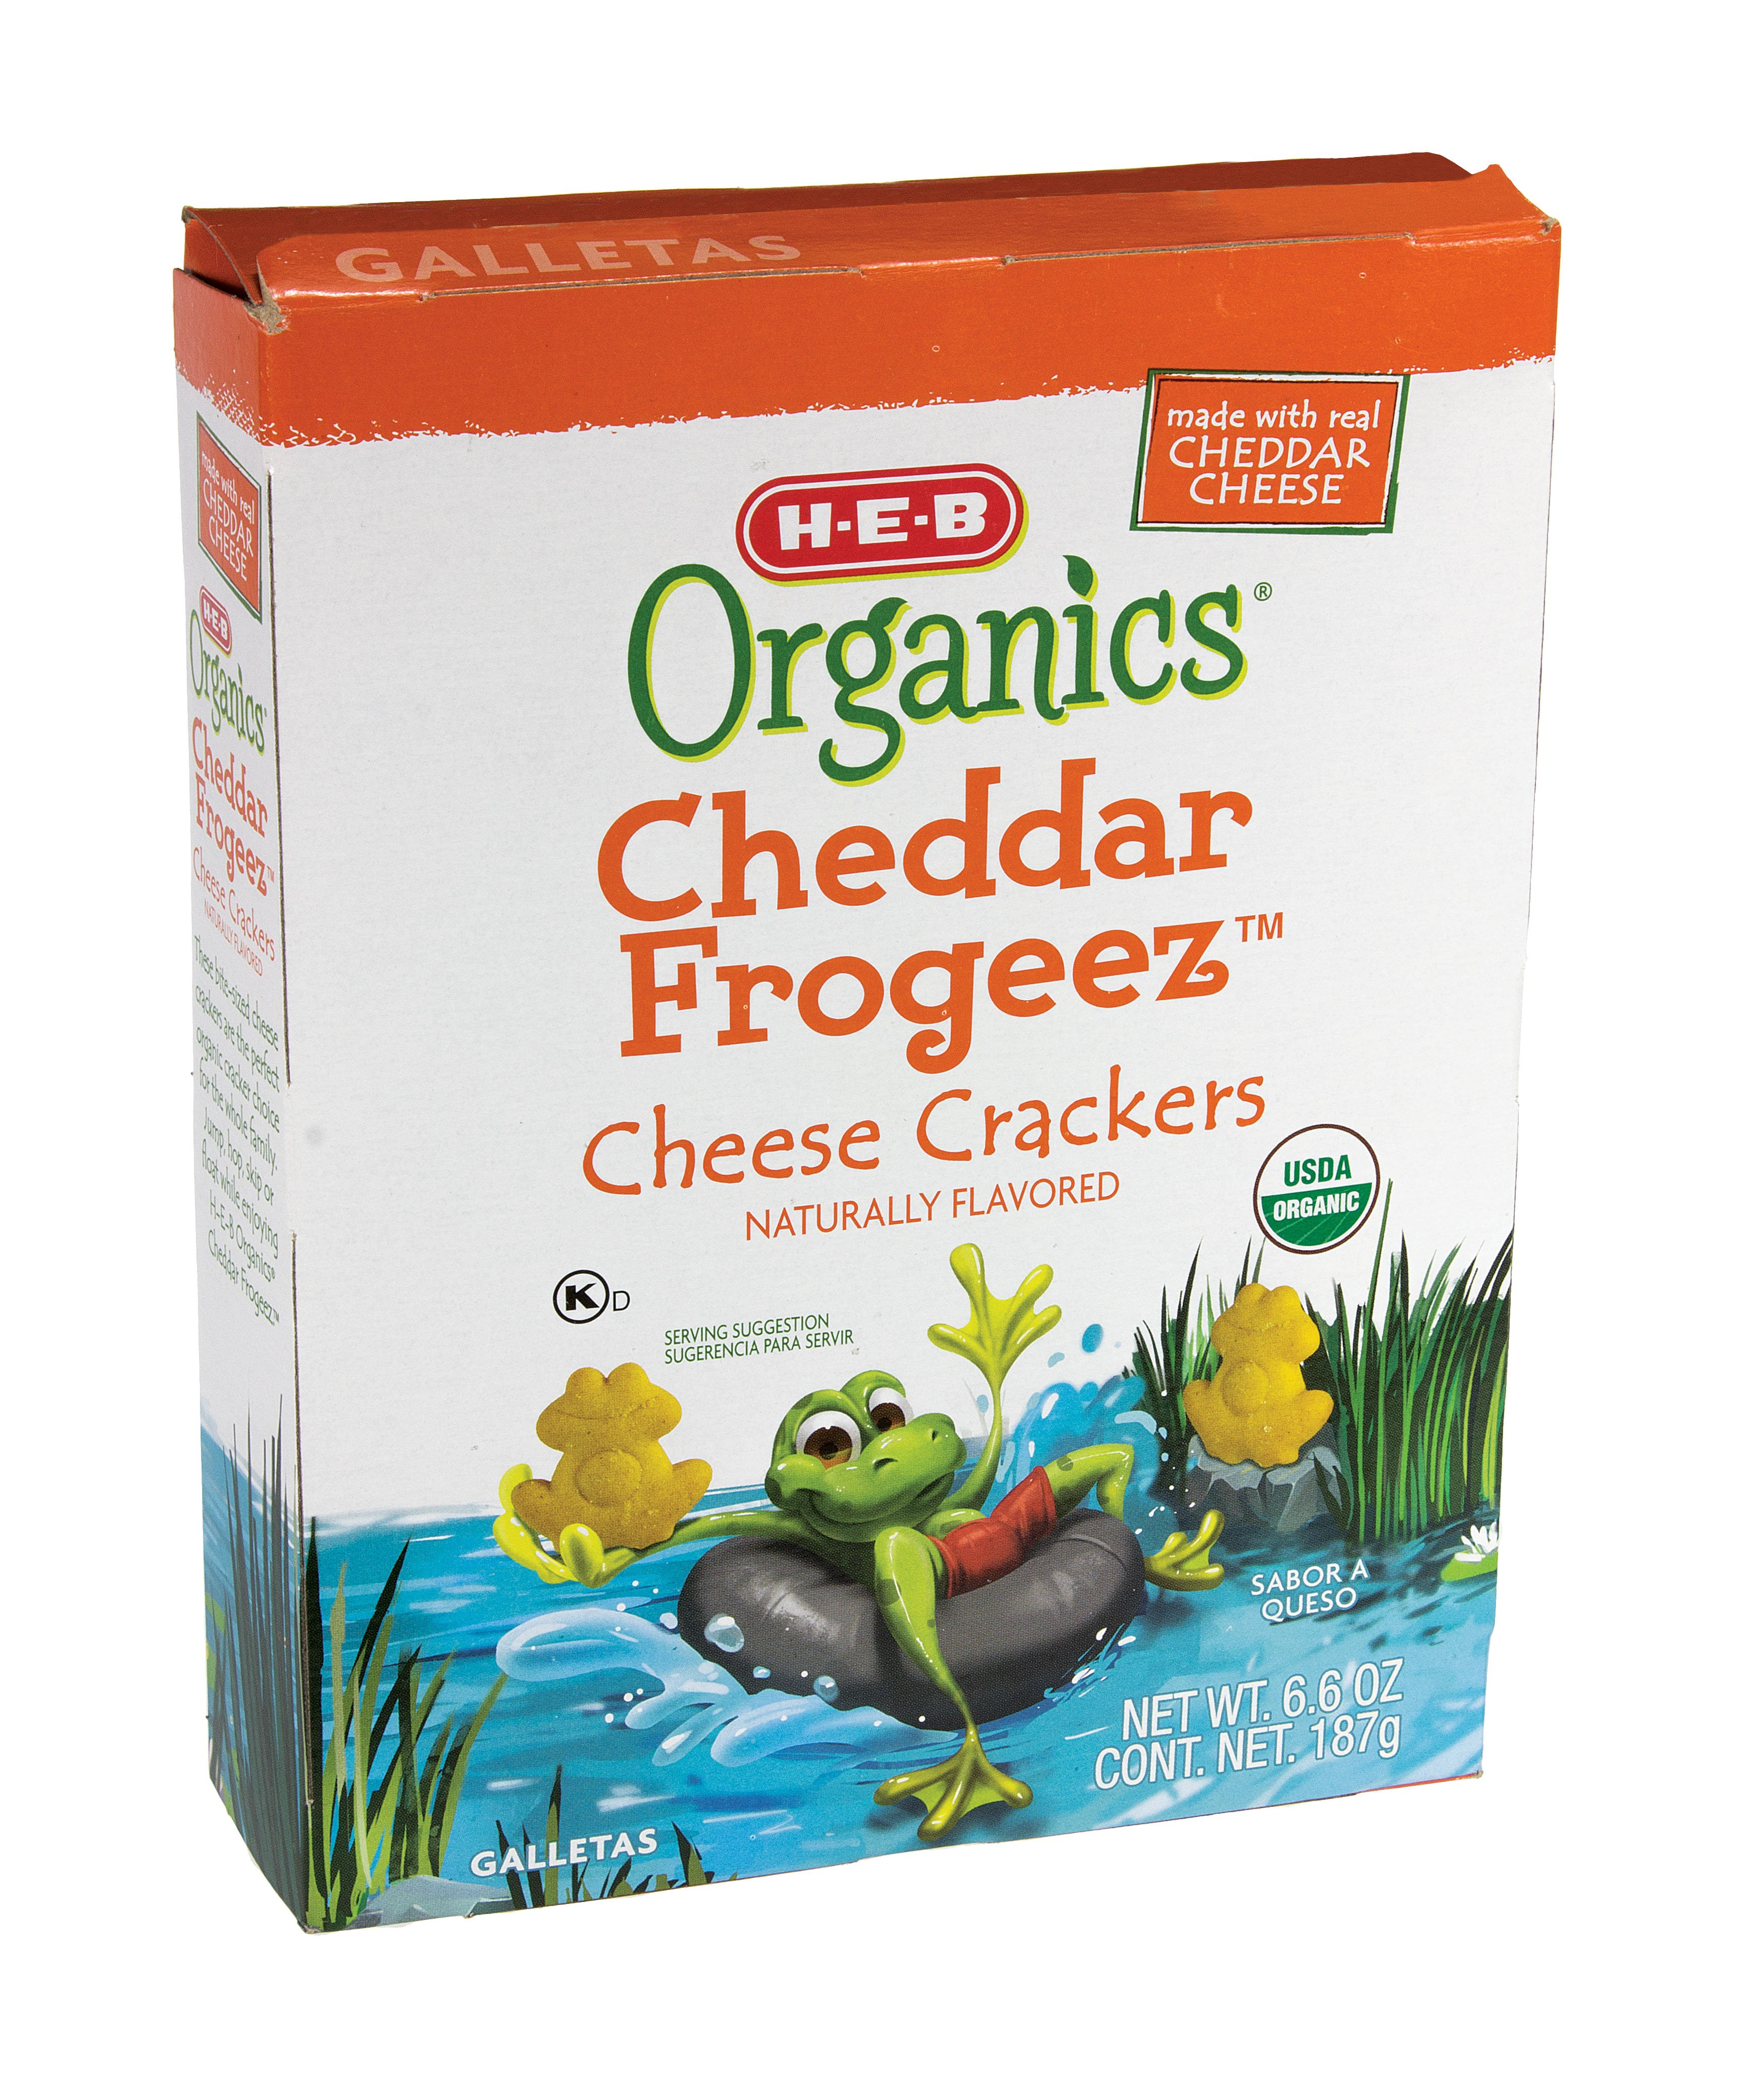 H‑E‑B Organics Cheddar Frogeez Cheese Crackers ‑ Shop Cheese and